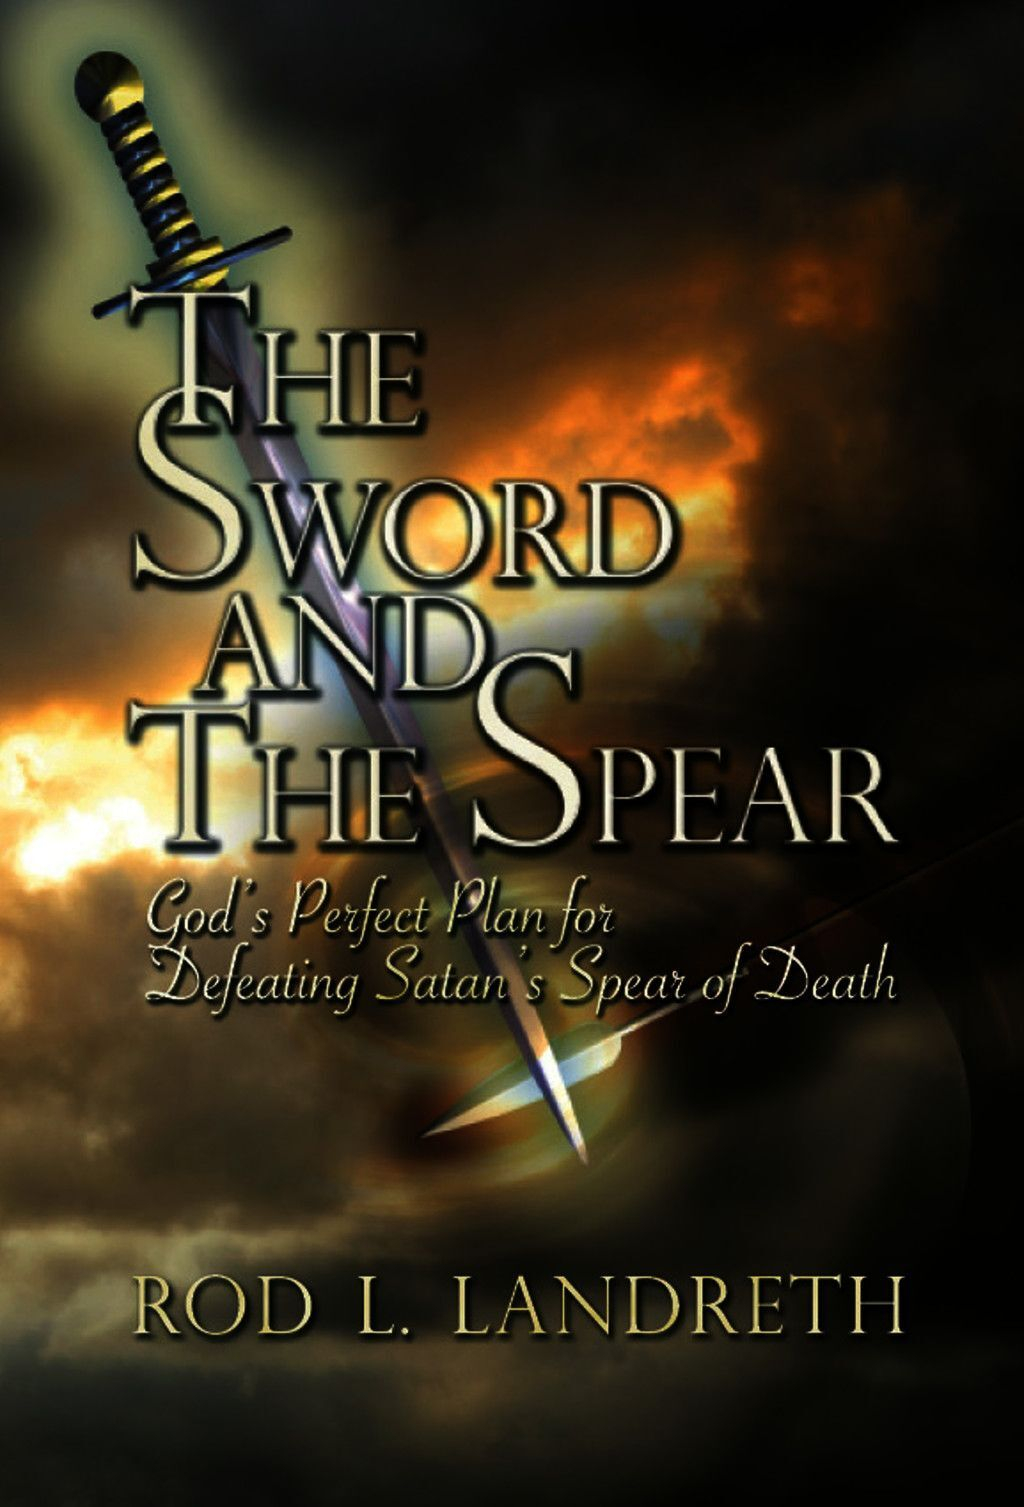 The Sword And The Spear